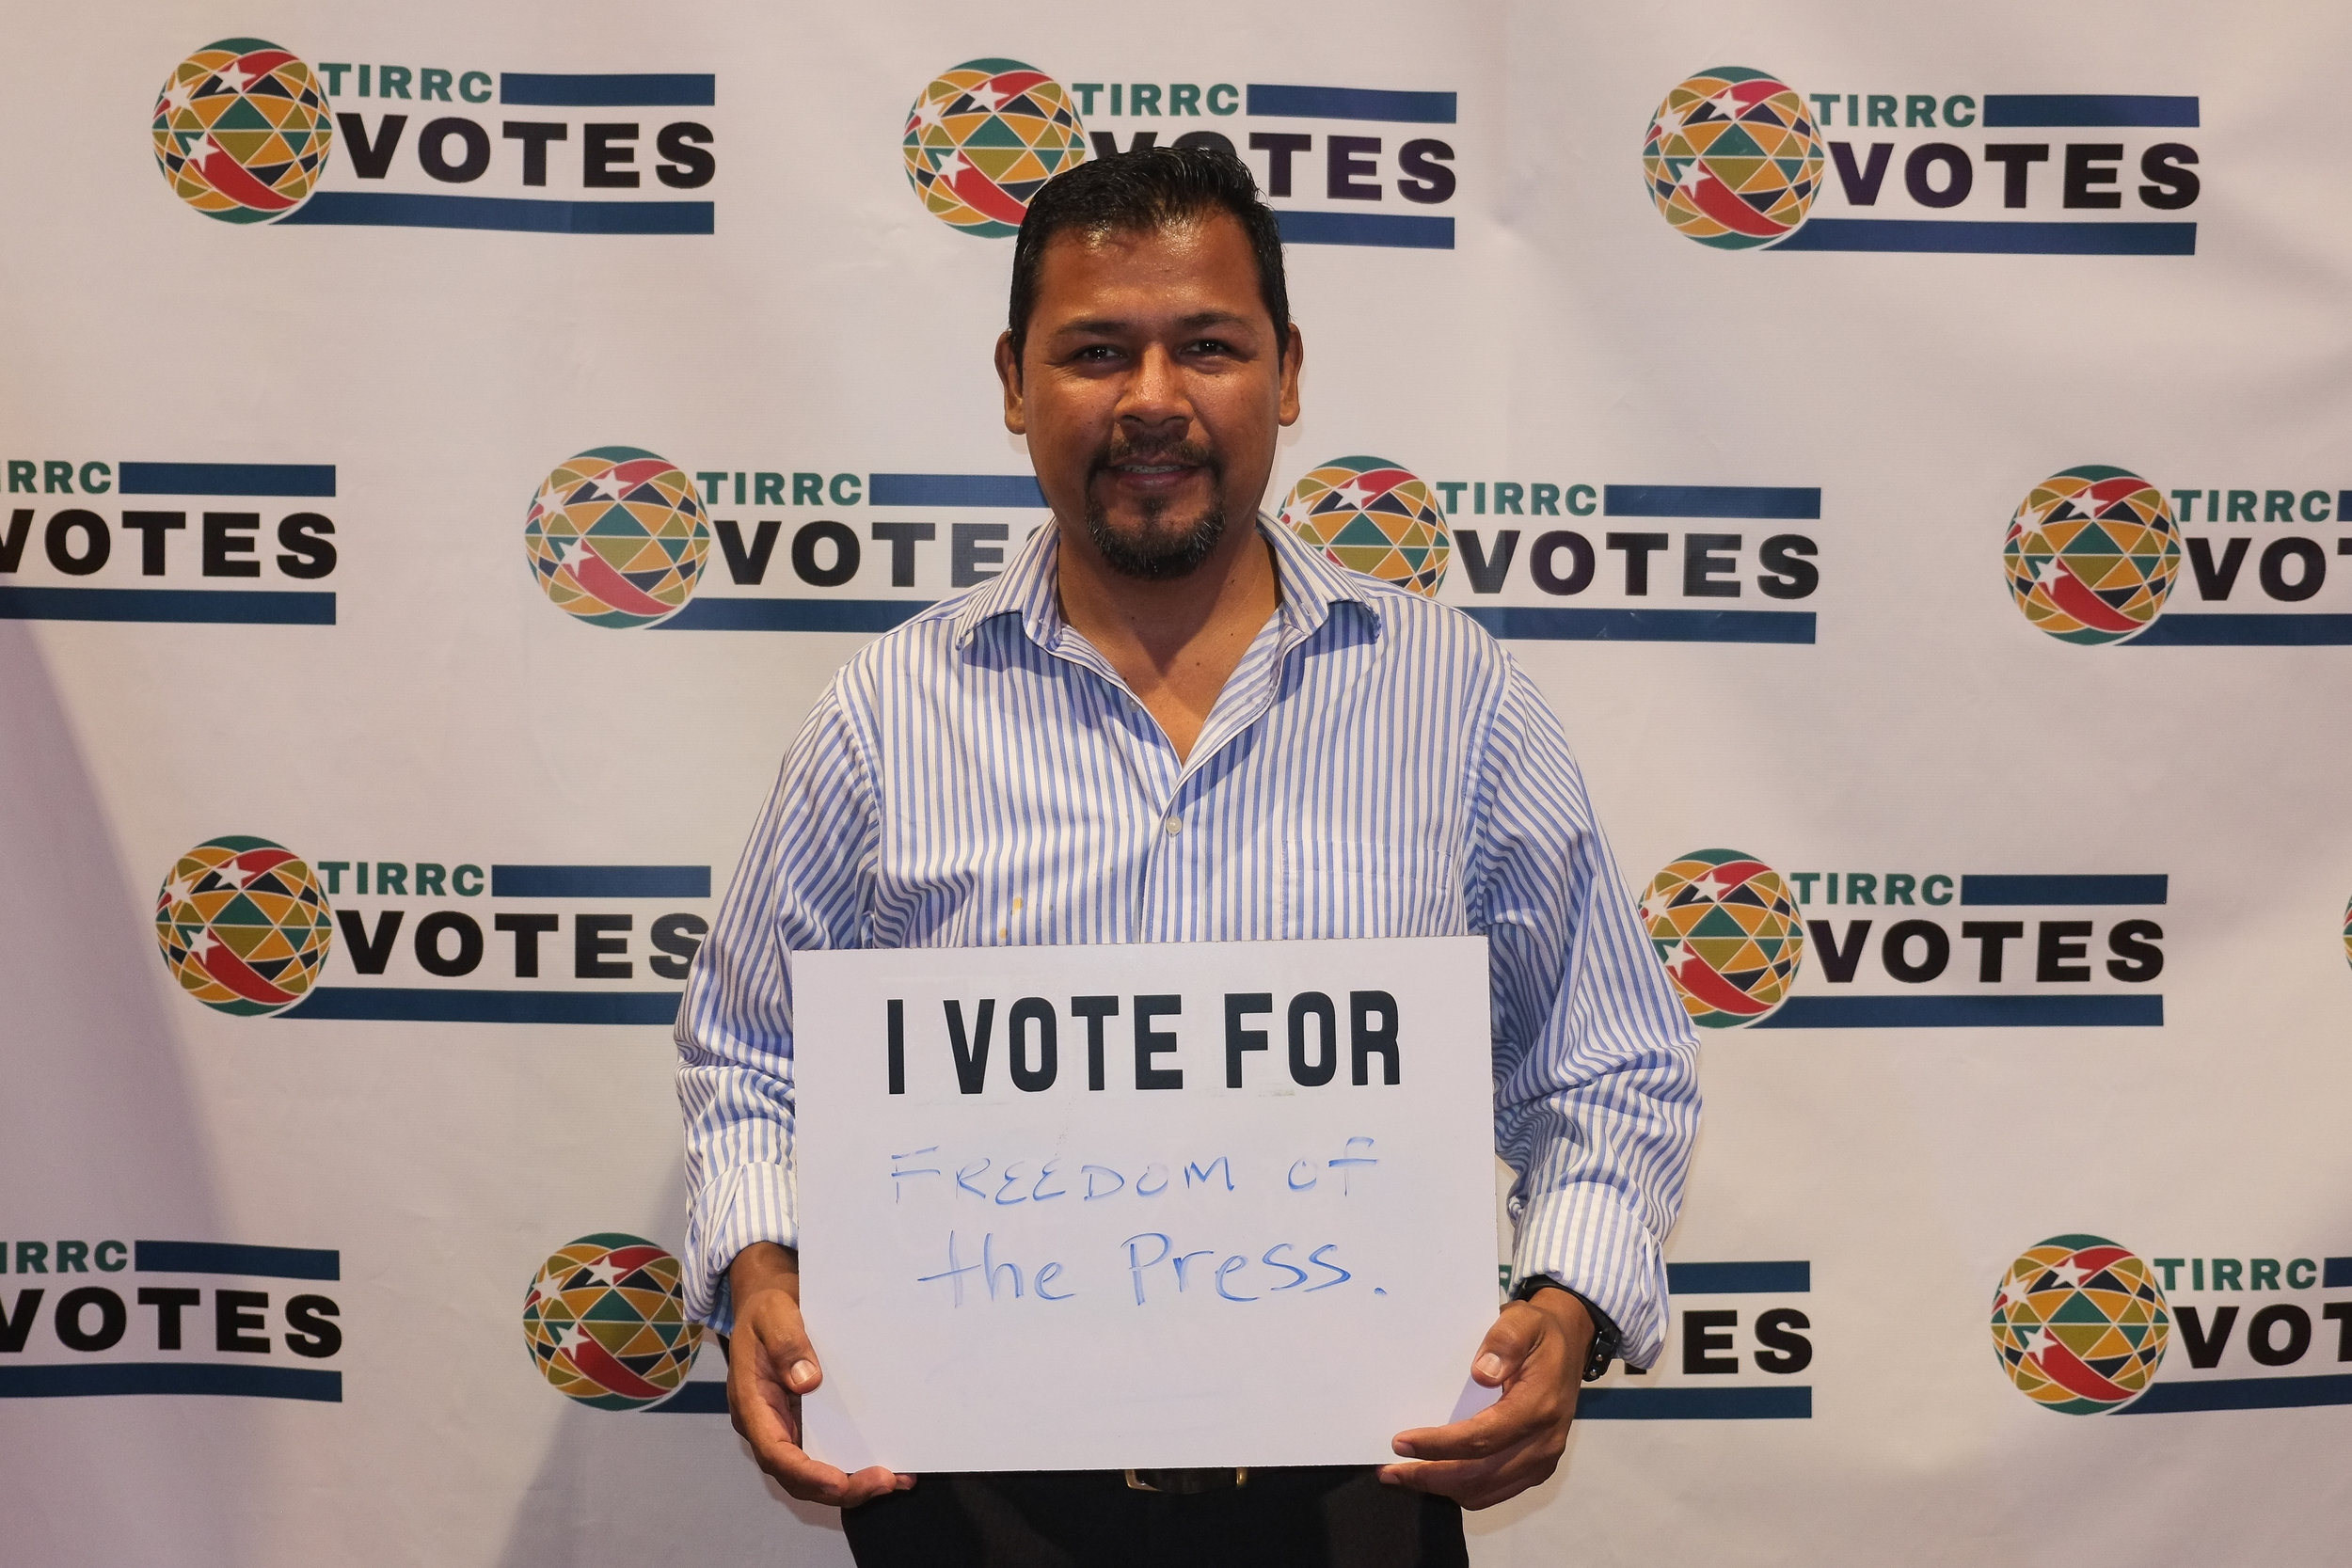 TIRRCVotes-PhotoBooth-67.jpg